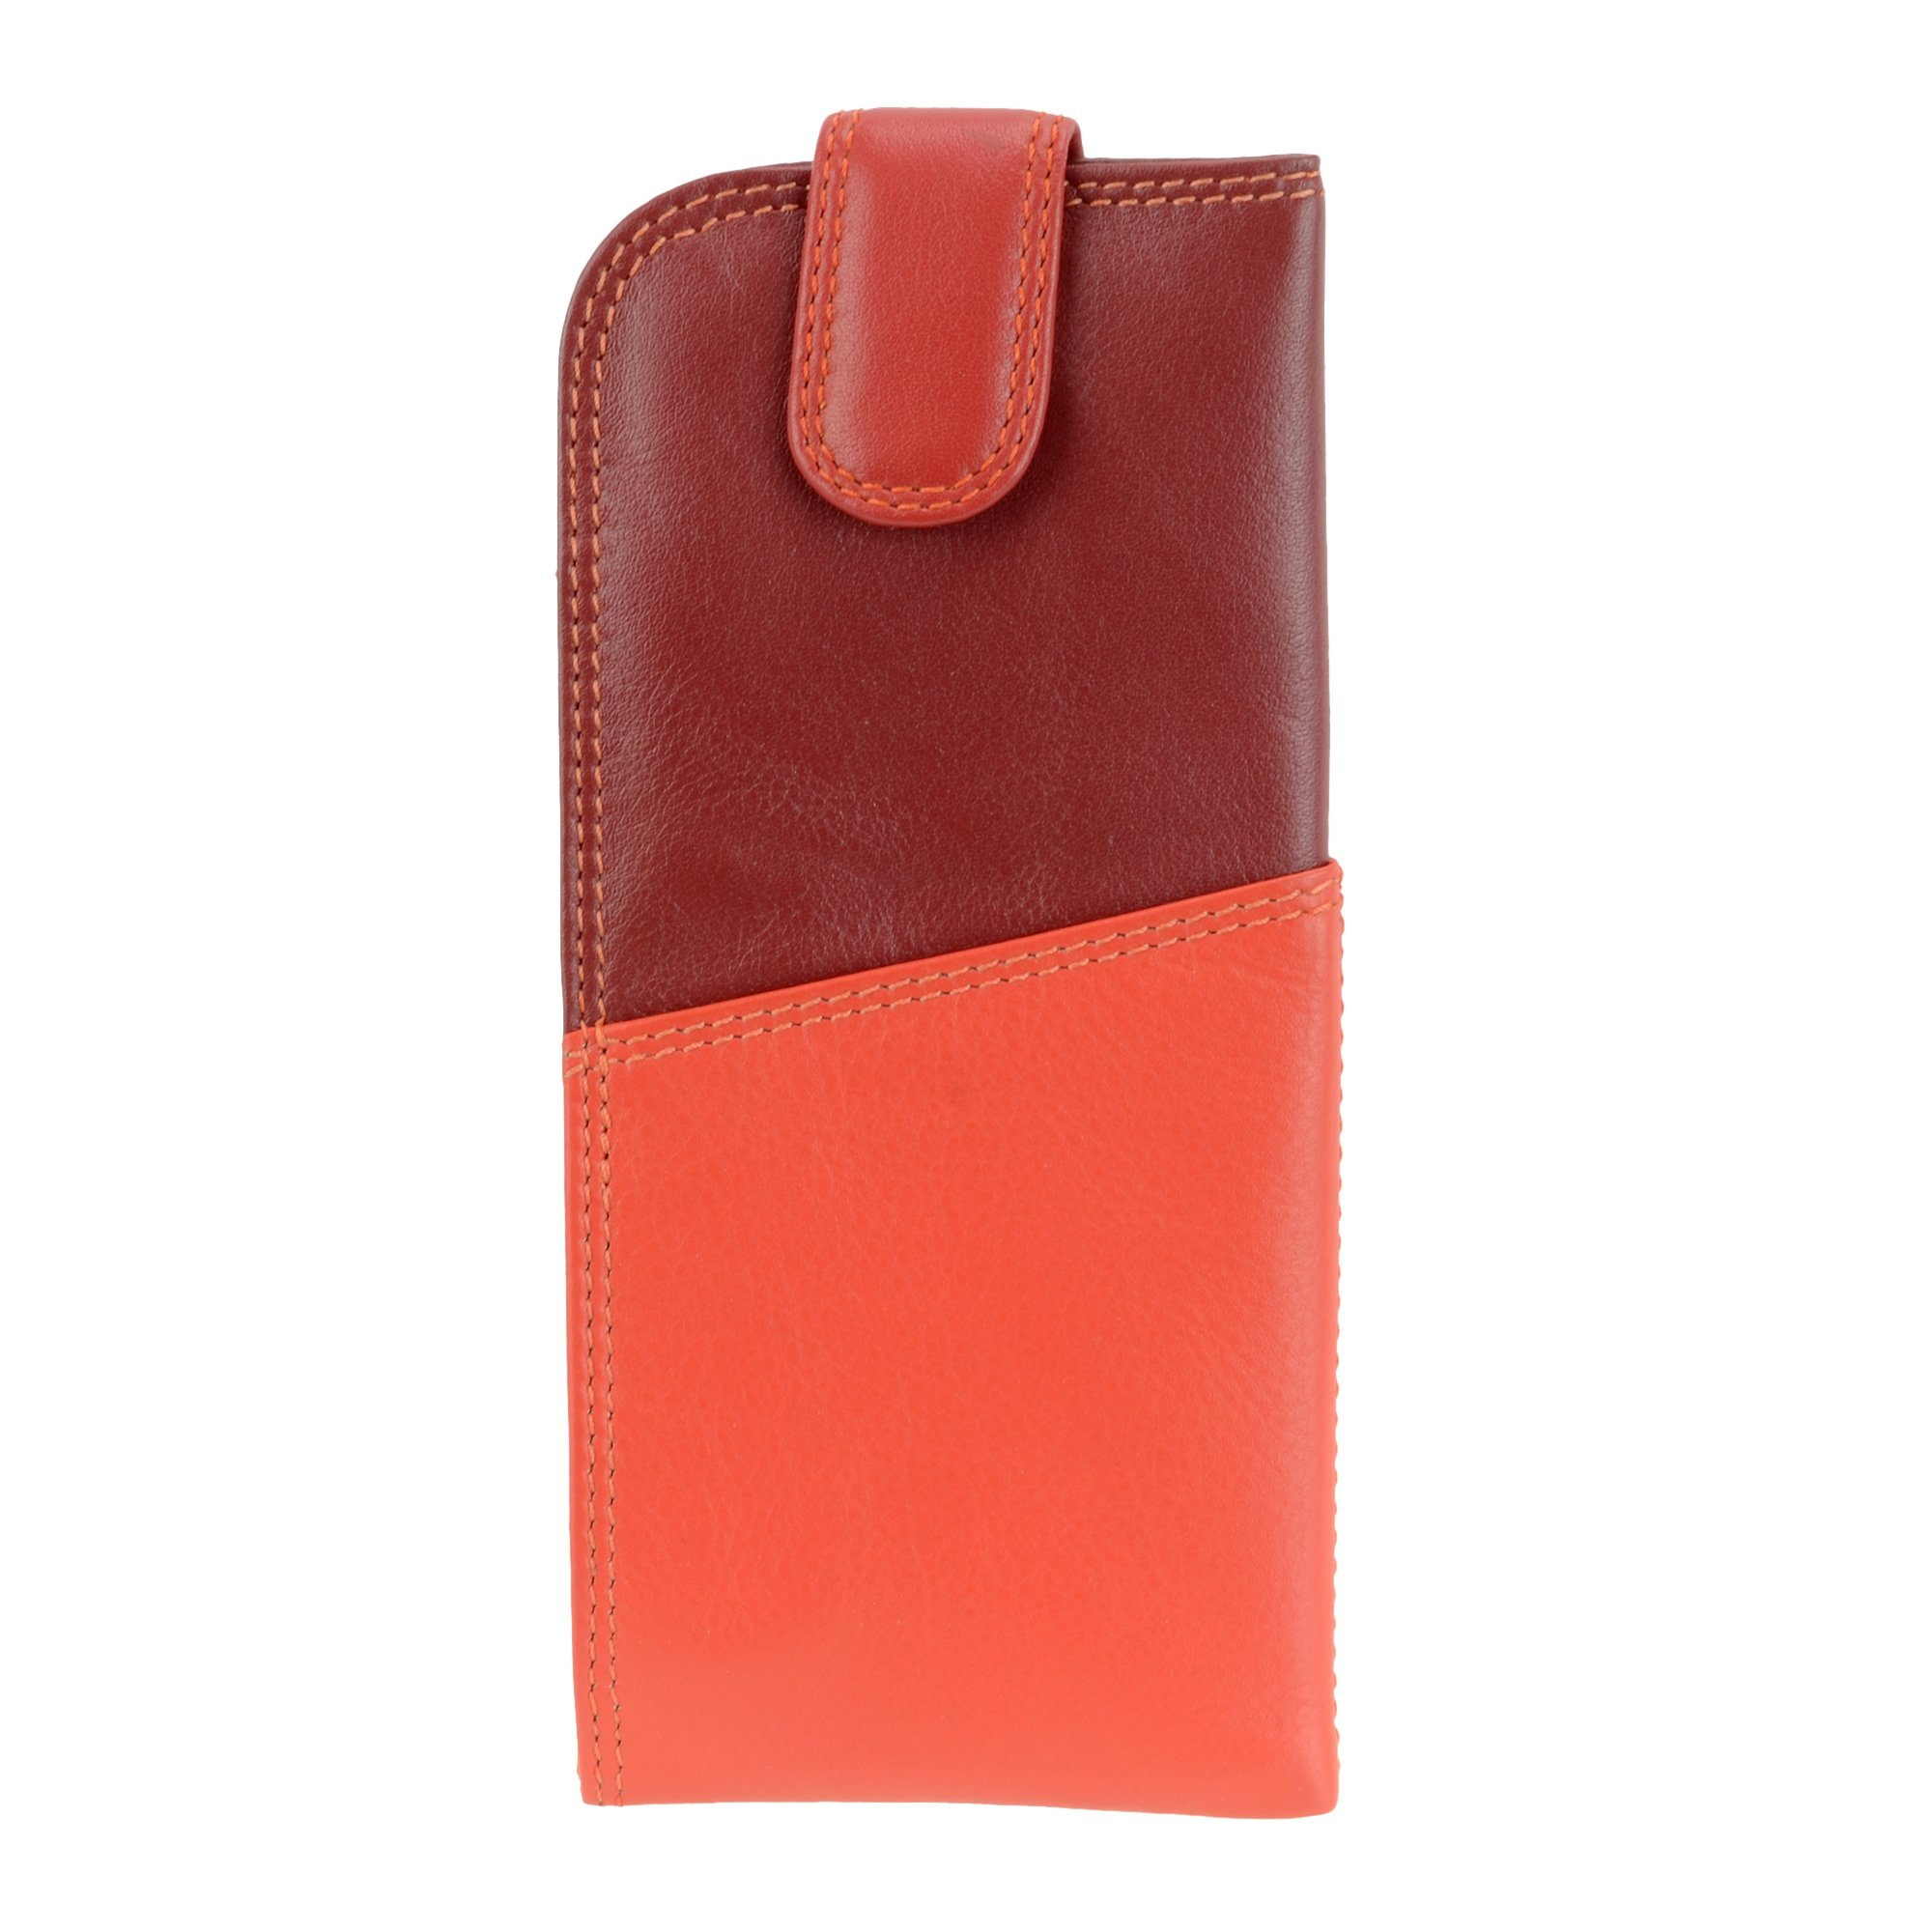 Visconti RB106 Soft Leather Eye Glasses Pouch / Sunglasses Case Holder (Red) by Visconti